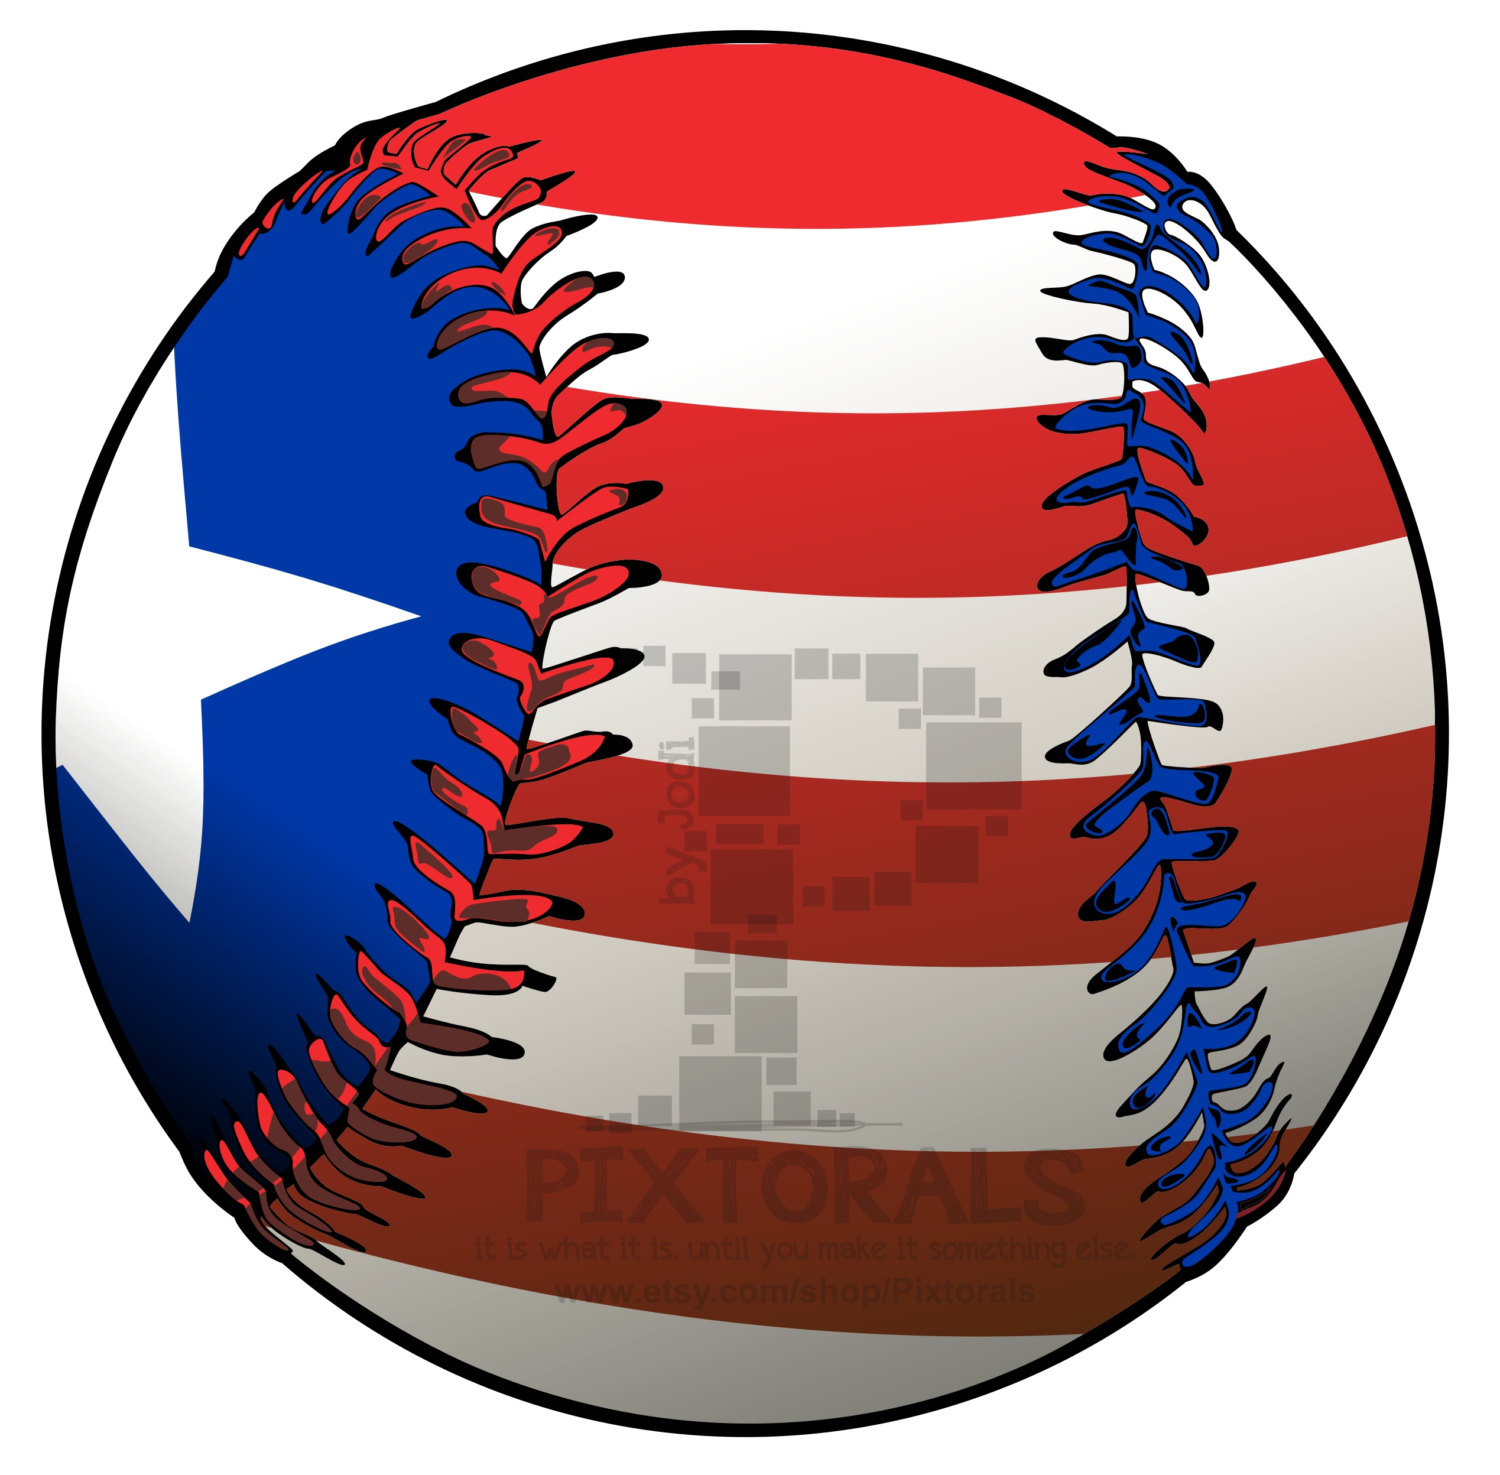 1500x1475 Softball Clipart, Suggestions For Softball Clipart, Download